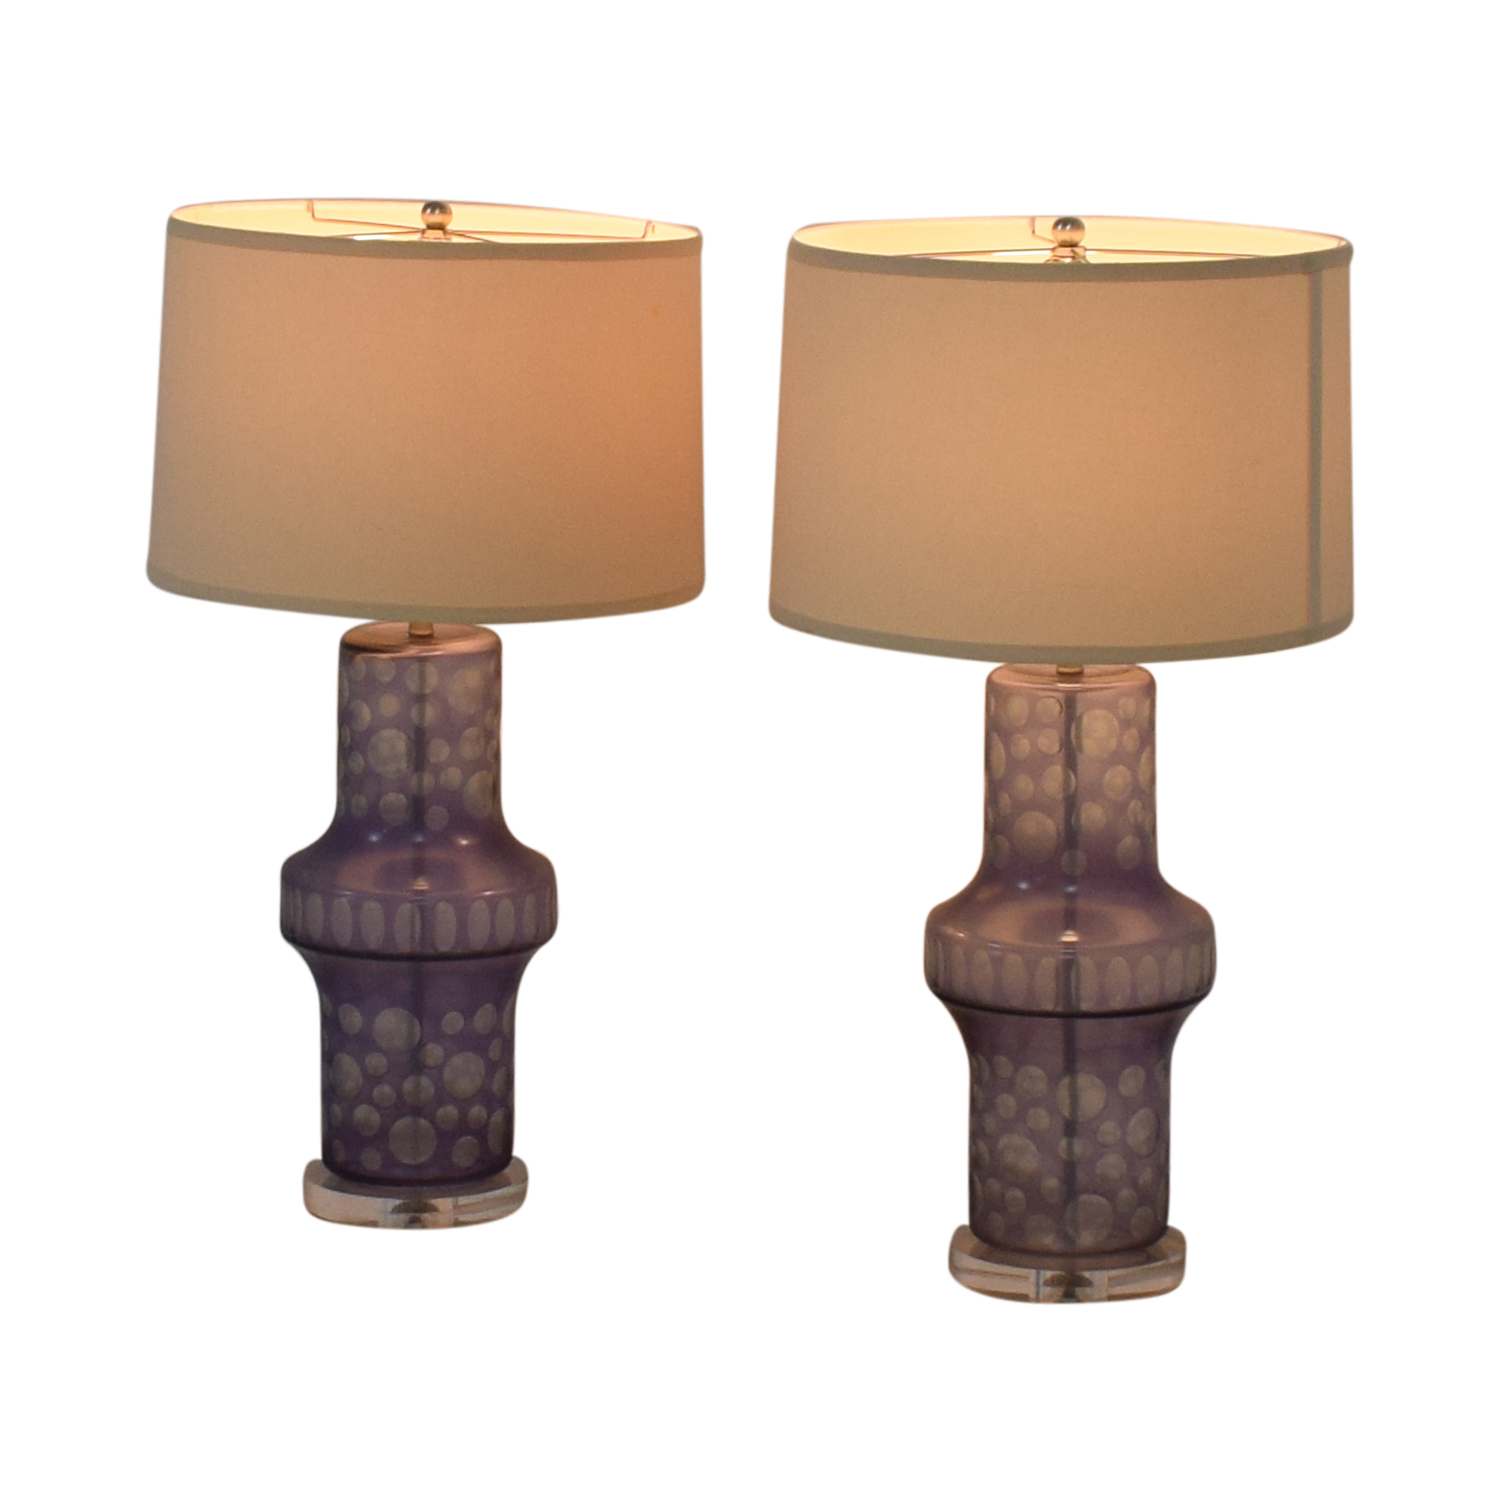 Decorative Table Lamps Lamps